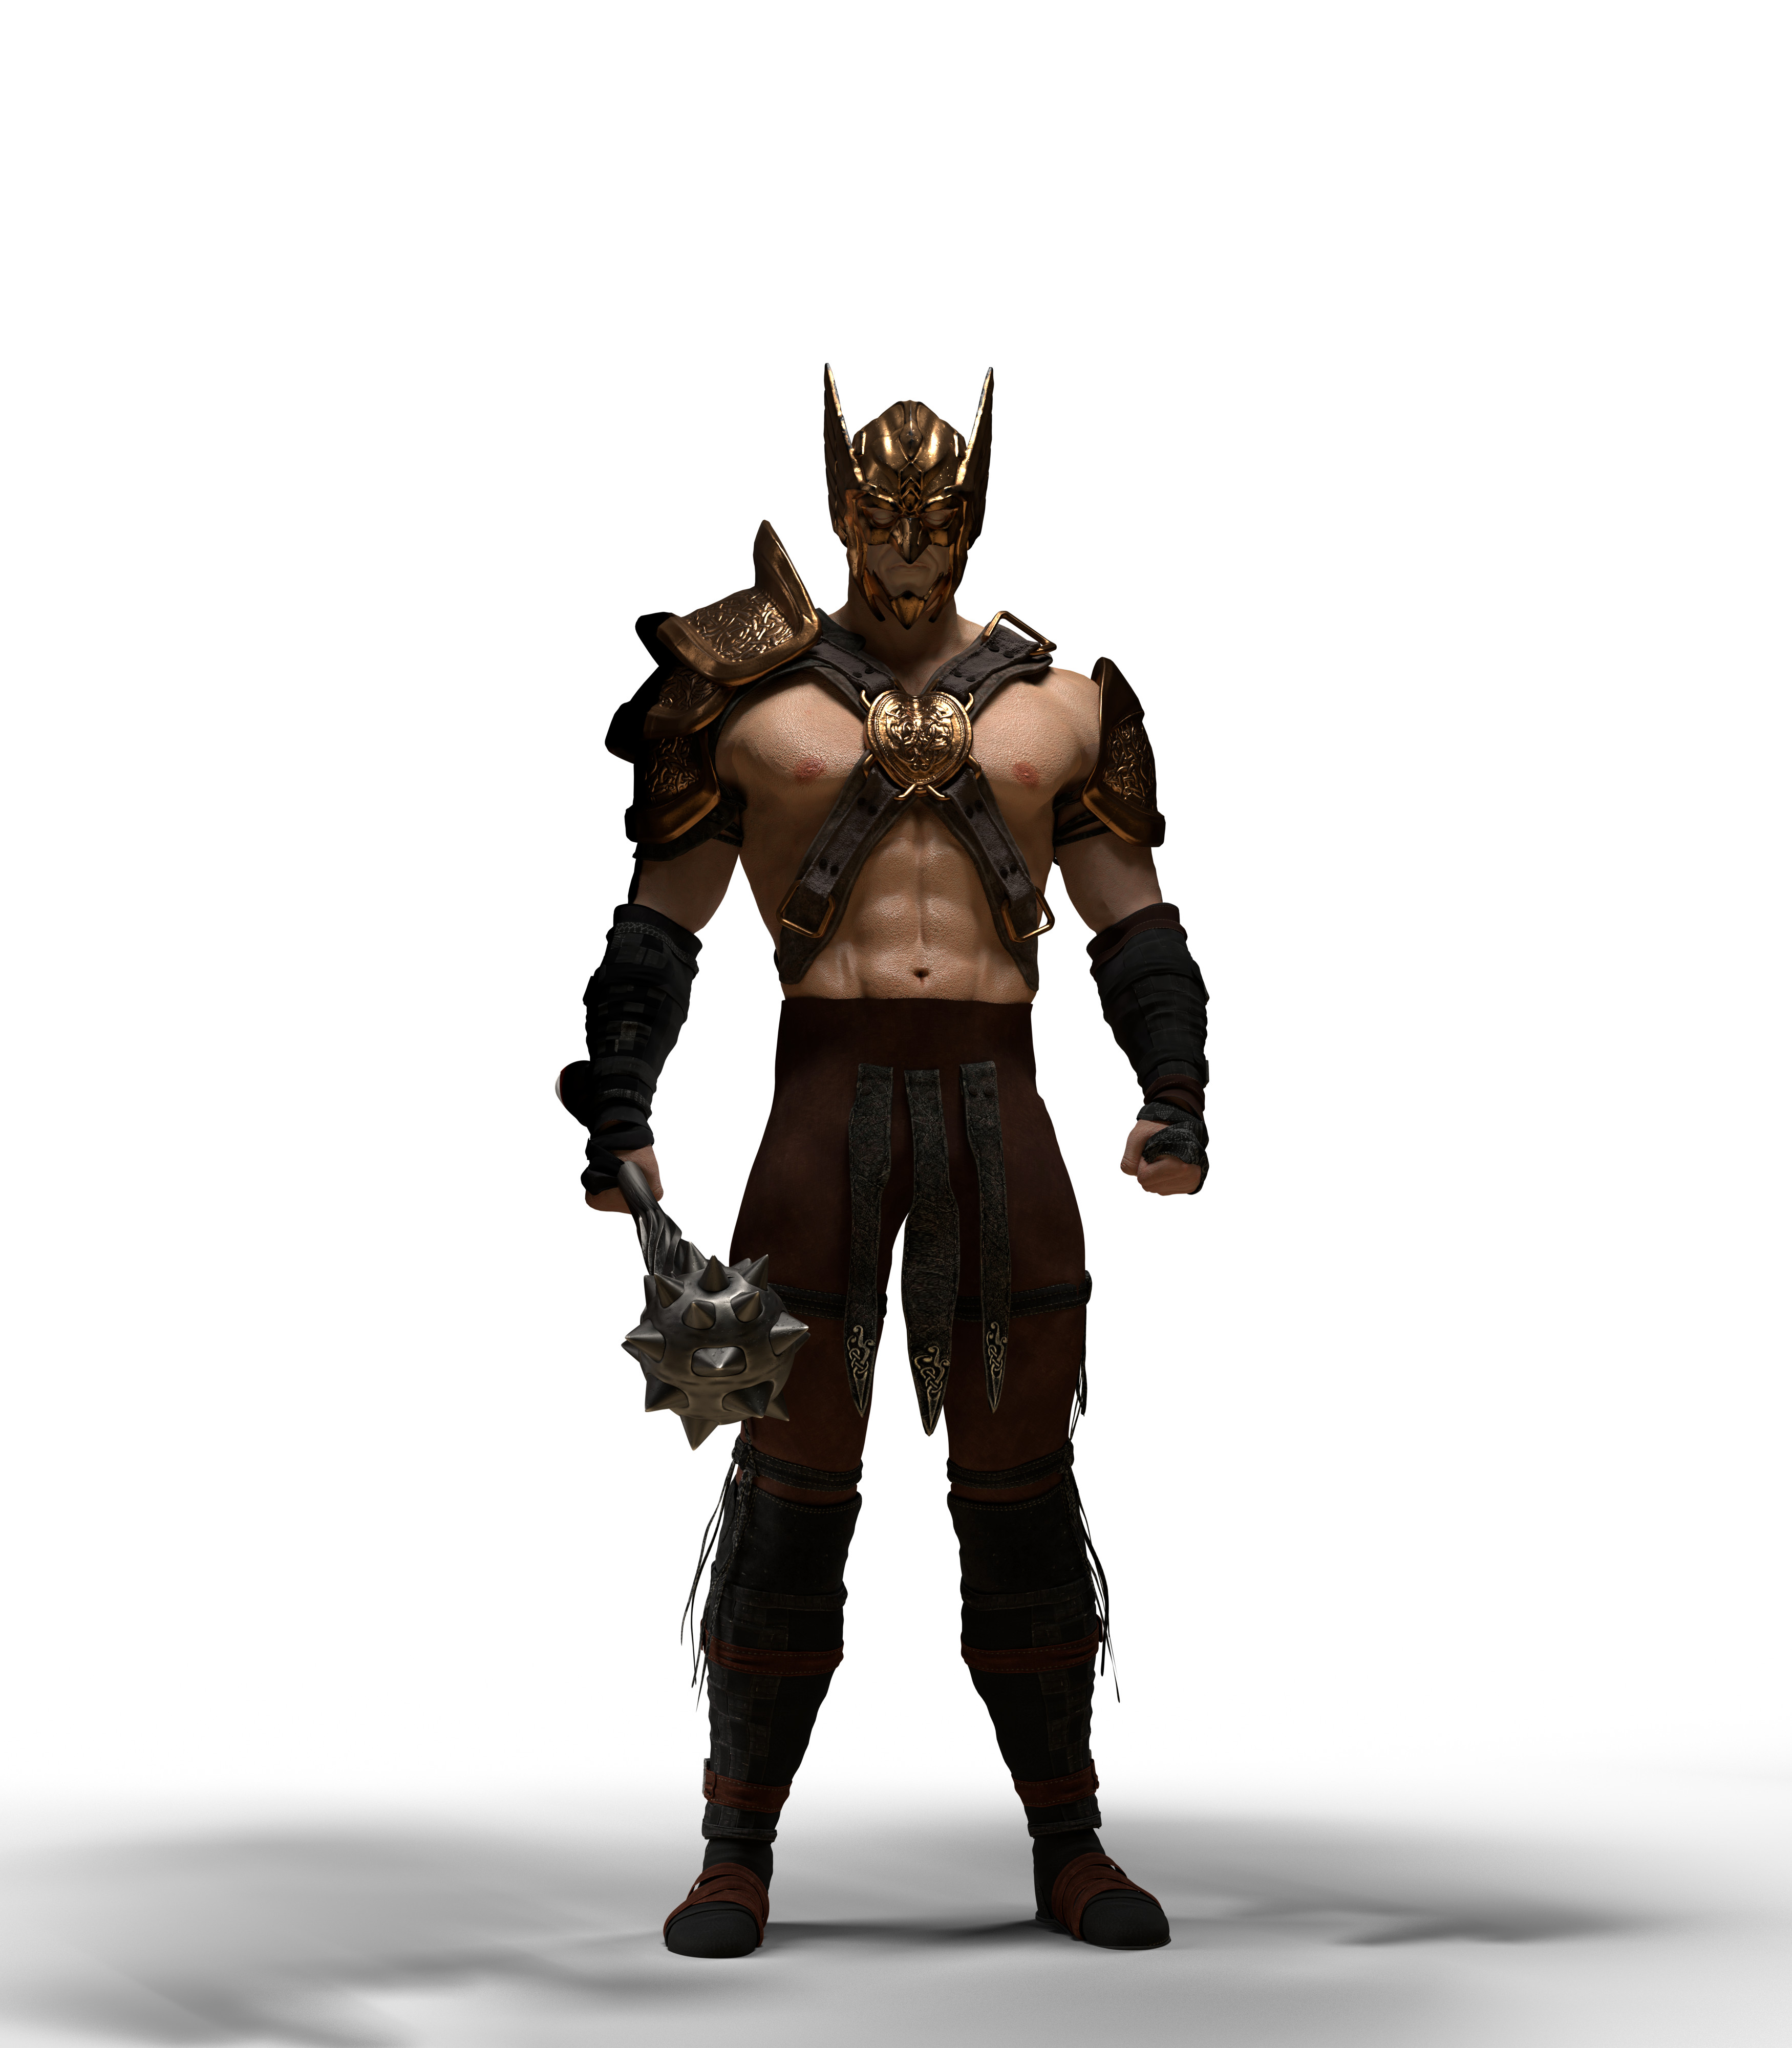 raw blender output, costume were DAZ elements and helmet base was a purchased model